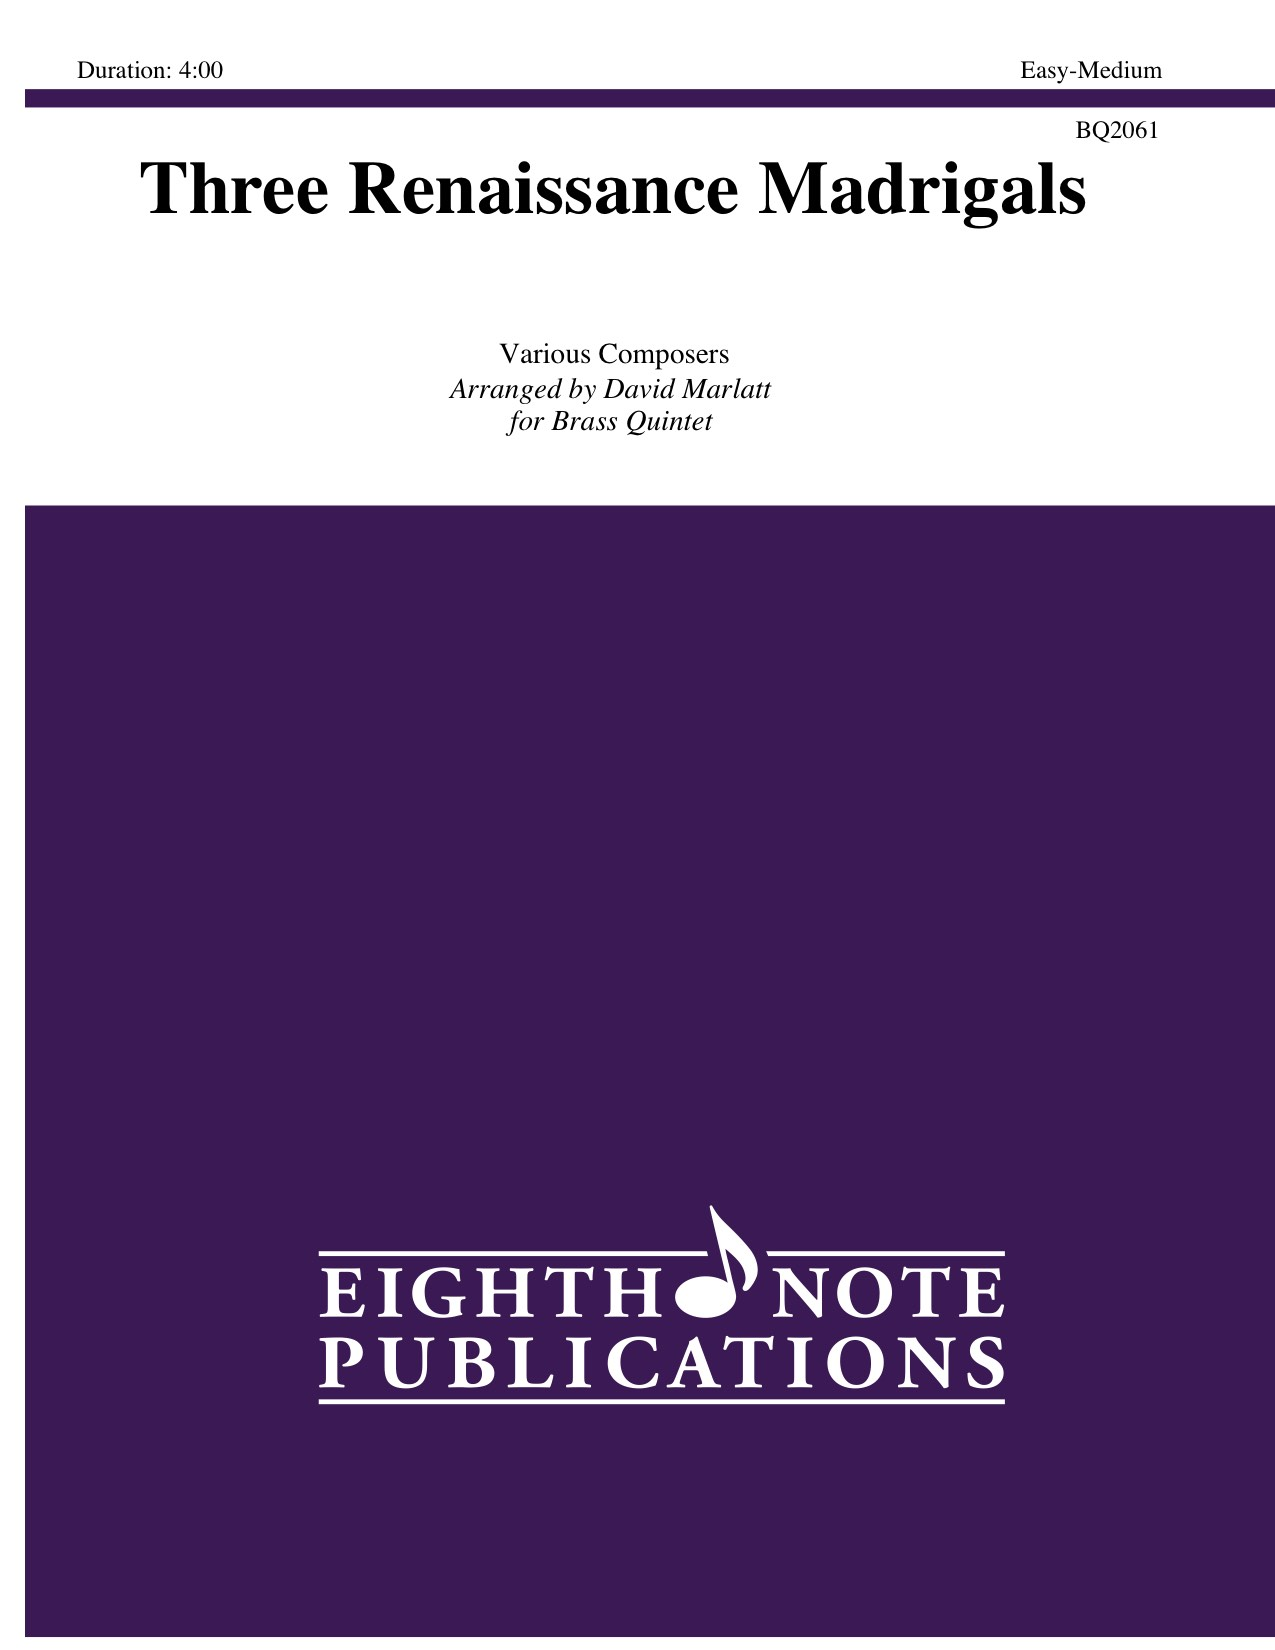 Three Renaissance Madrigals -  Various